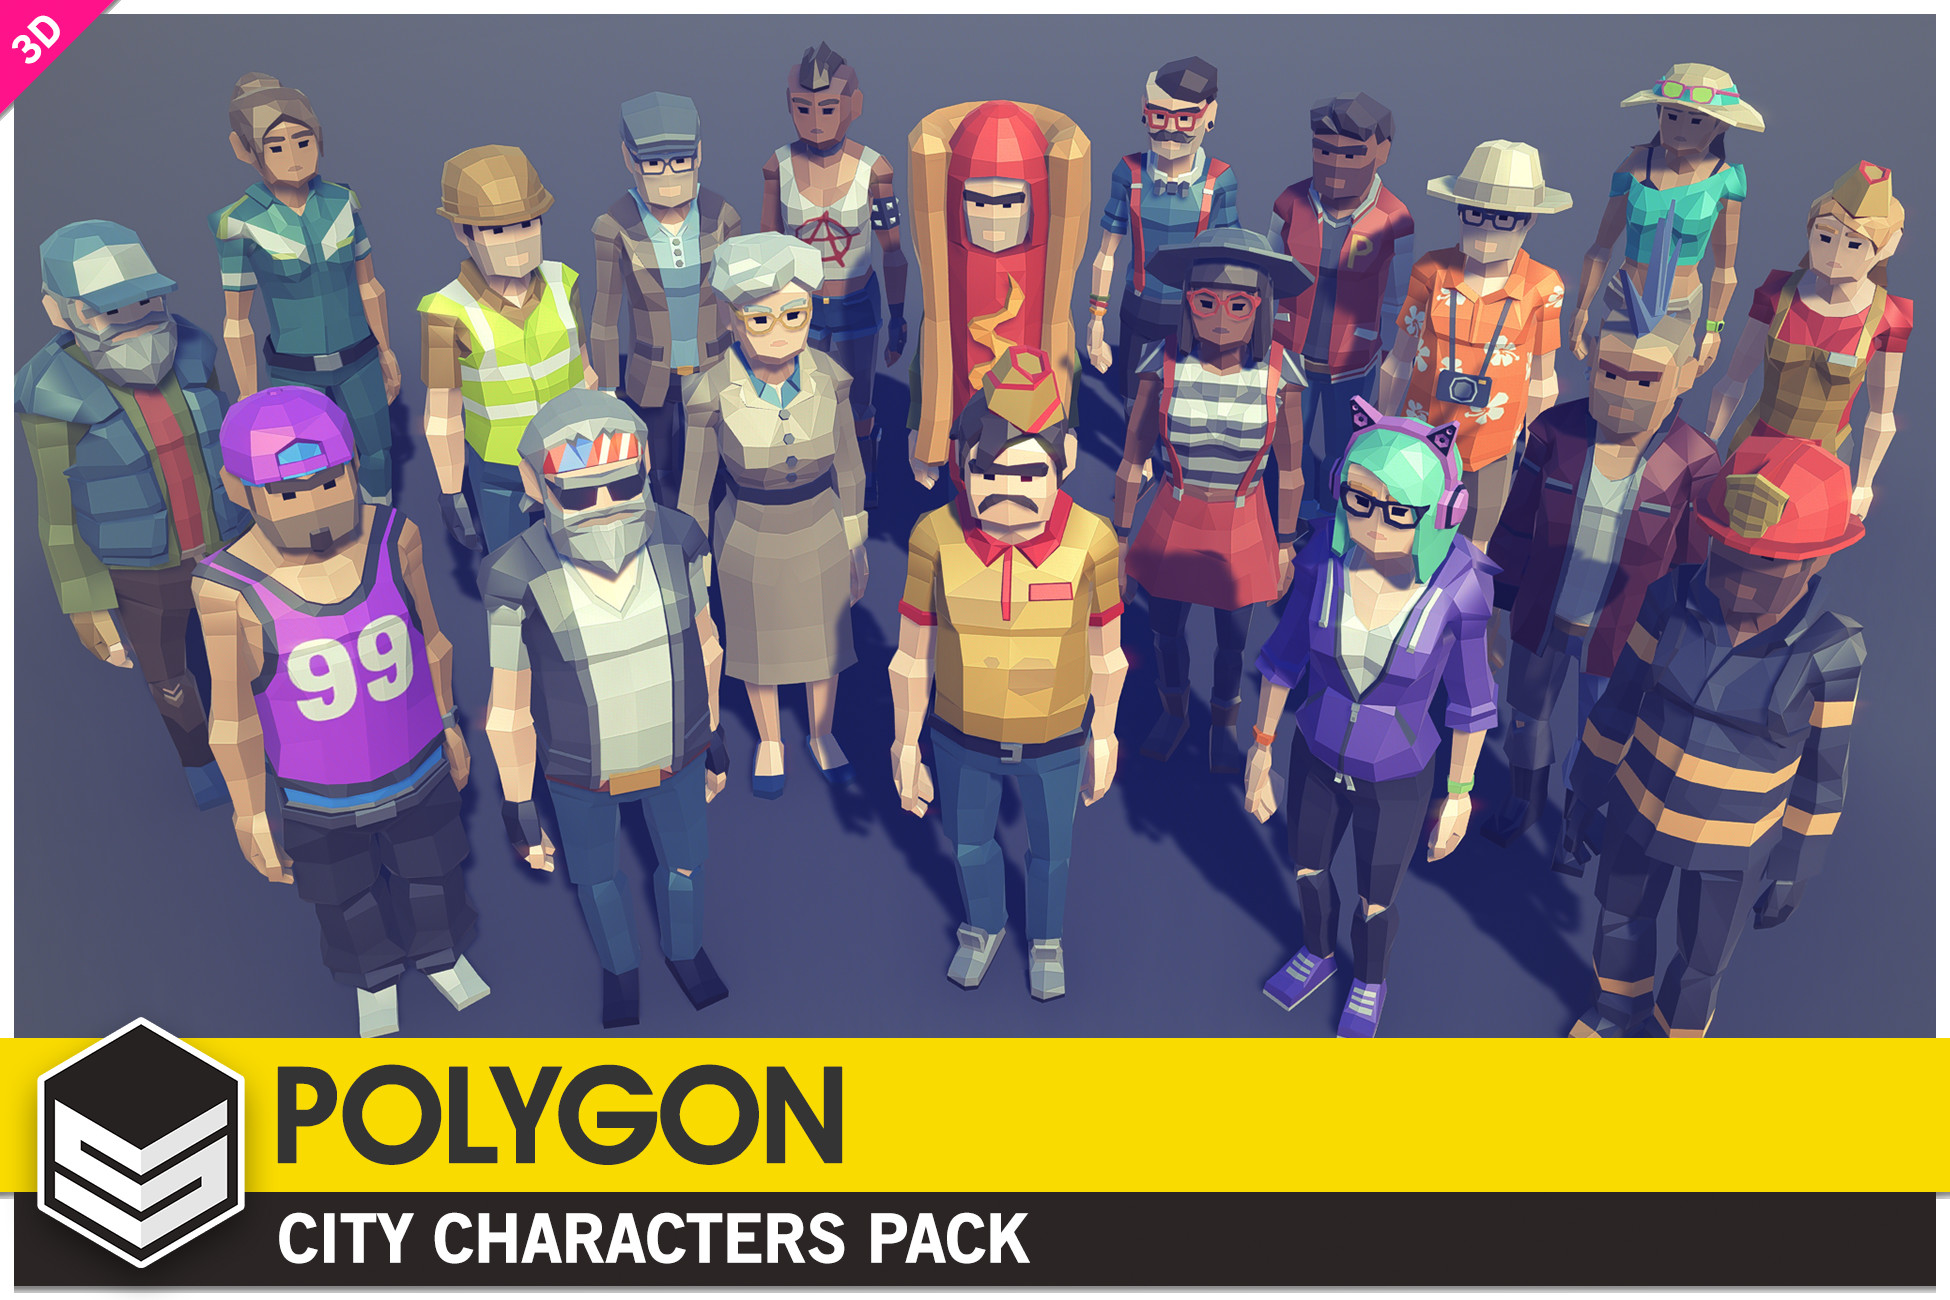 POLYGON - City Characters